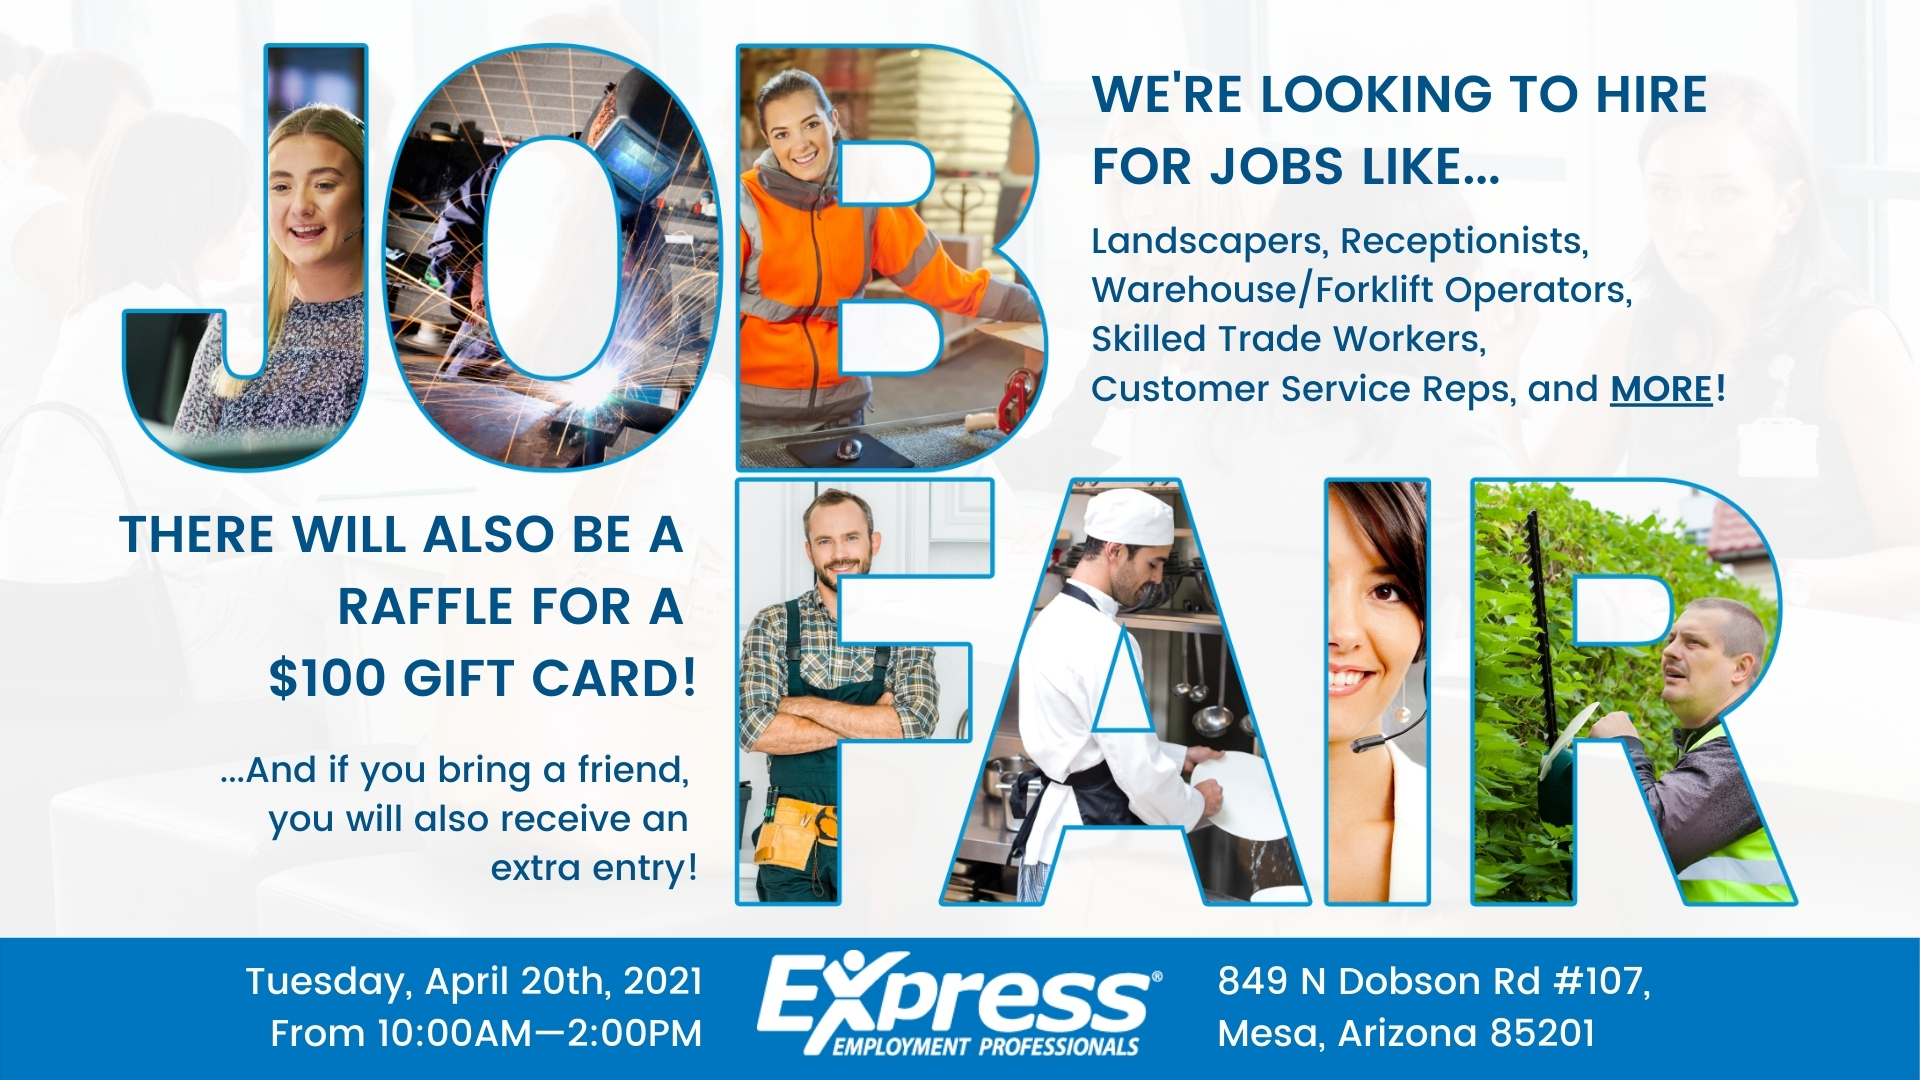 Express Job Fair in Mesa, Arizona on April 20th, 2021 from 10AM to 2PM.